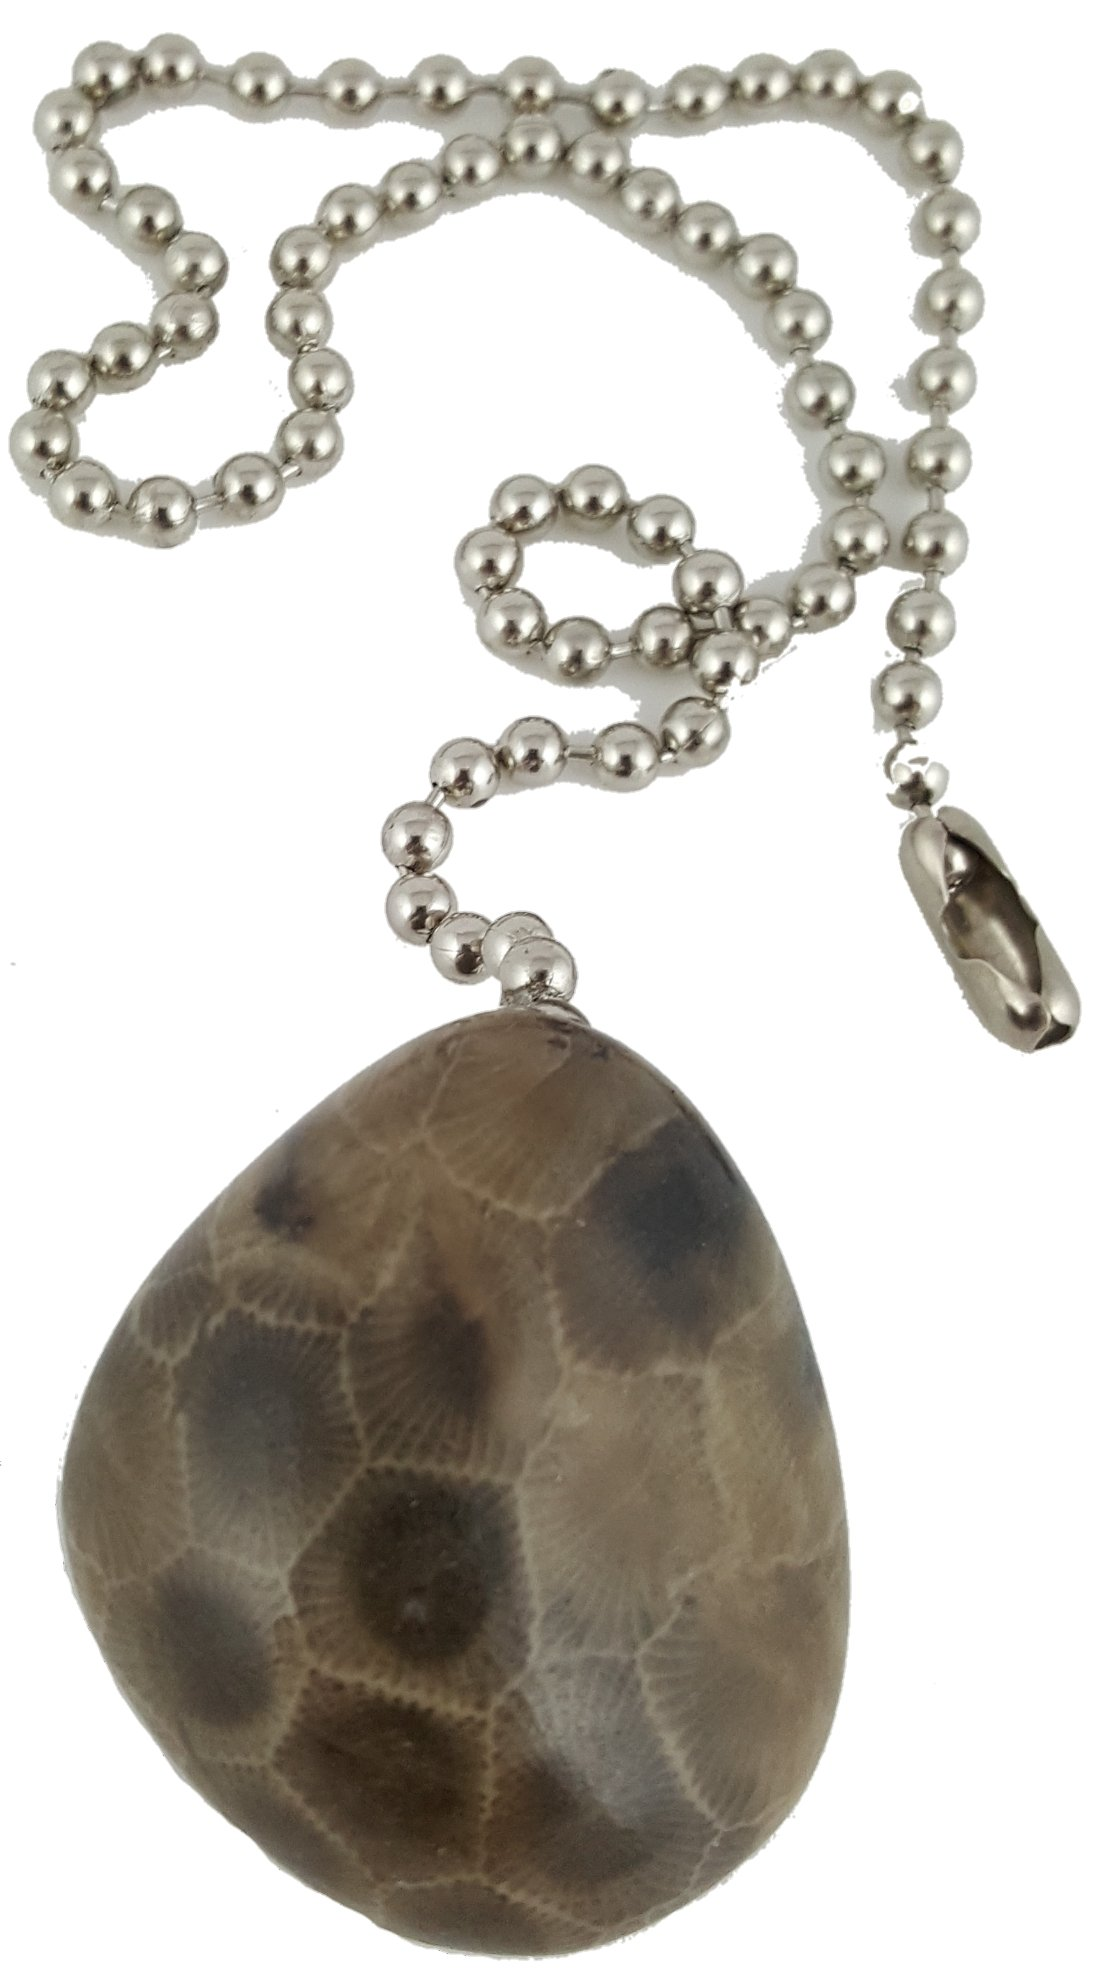 Petoskey Stone Decorative chain pull for fans and lights | Made in Michigan